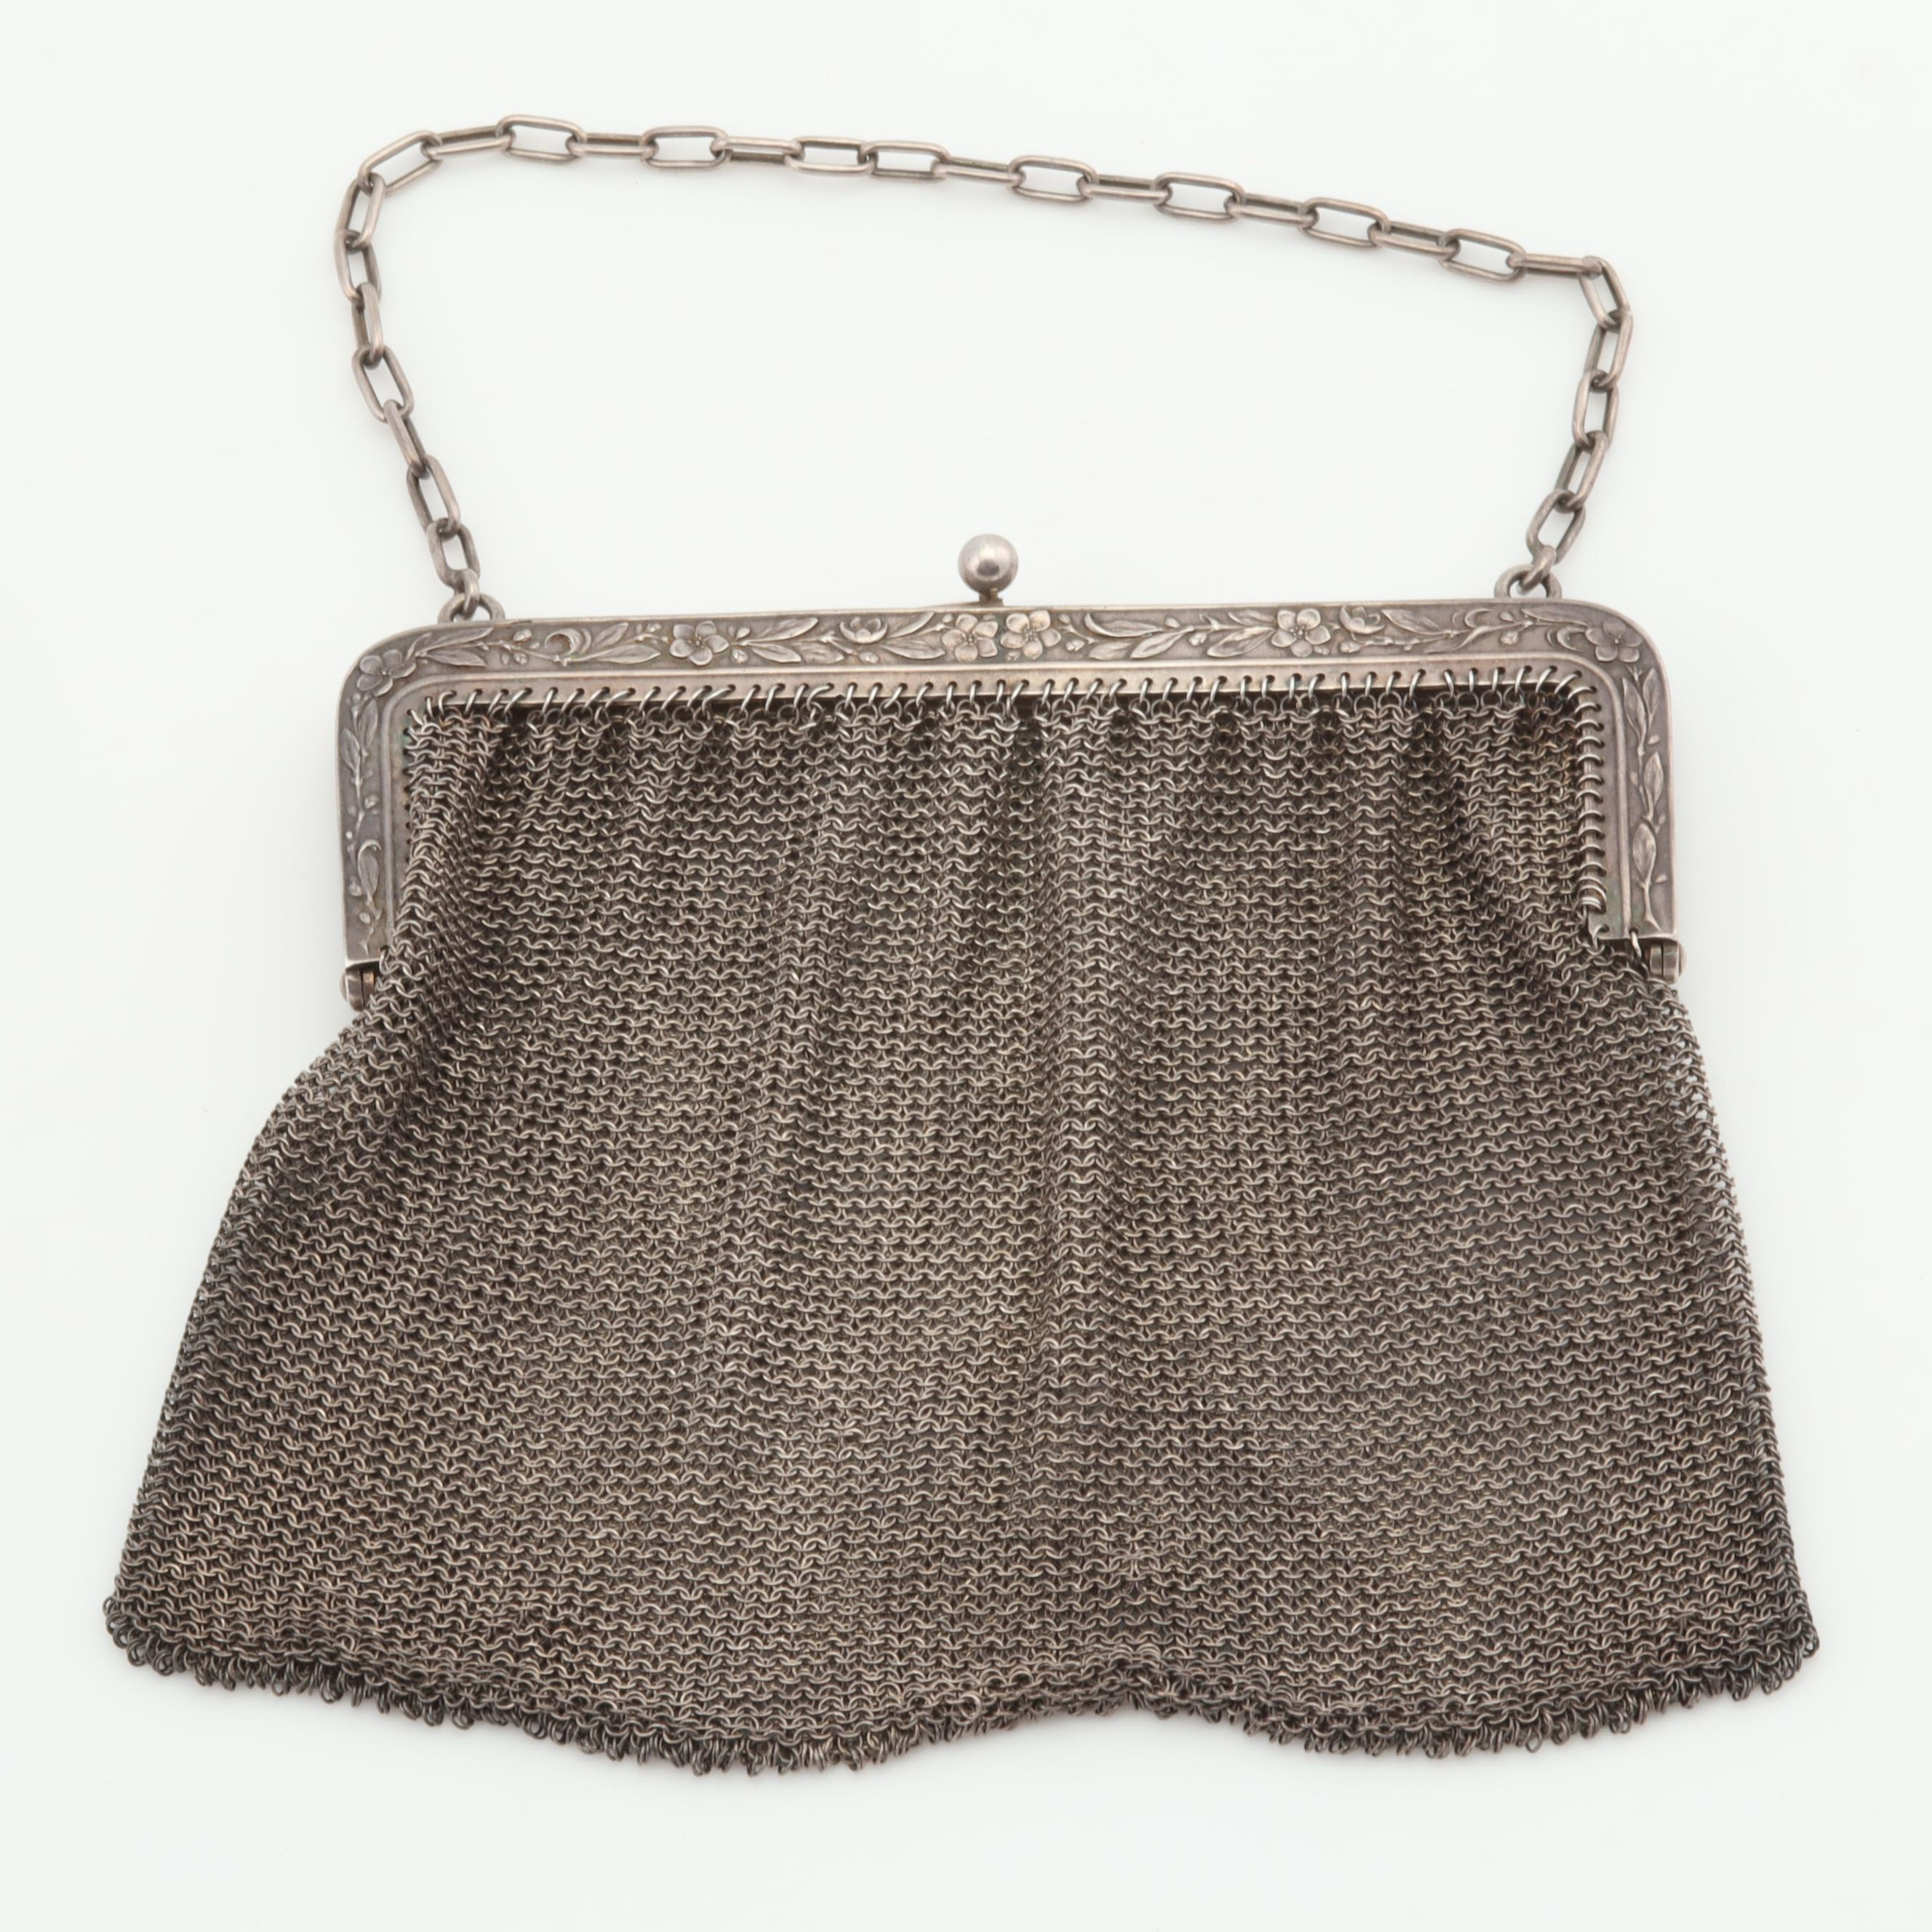 Sterling Silver Framed Mesh Purse with Florals, Early 20th Century